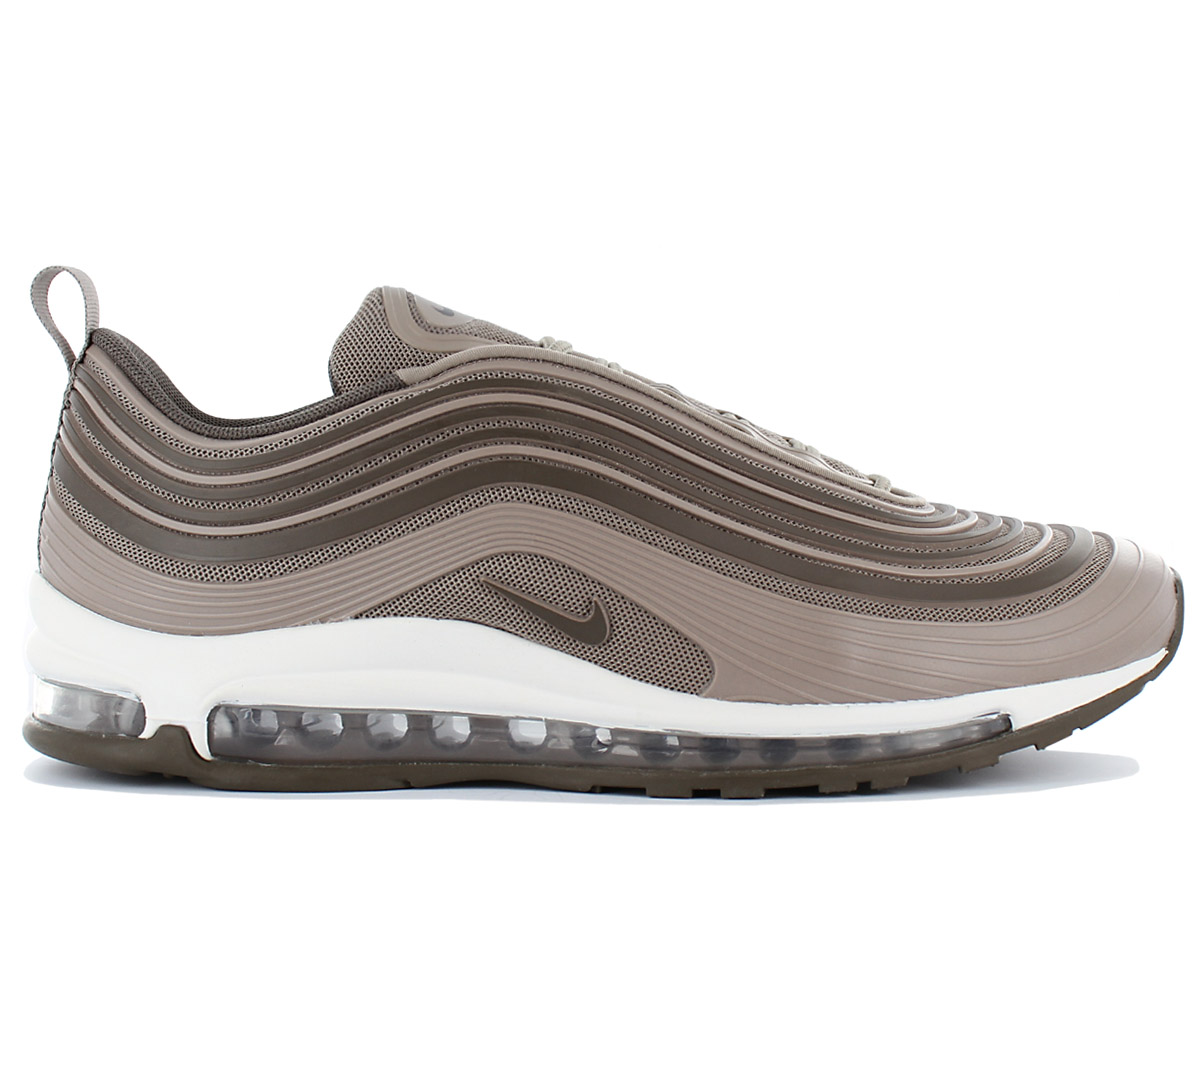 Details about Nike Air Max 97 Ul 17 Ultra Premium Men's Sneaker Shoes Sepia Stone AH7581 200